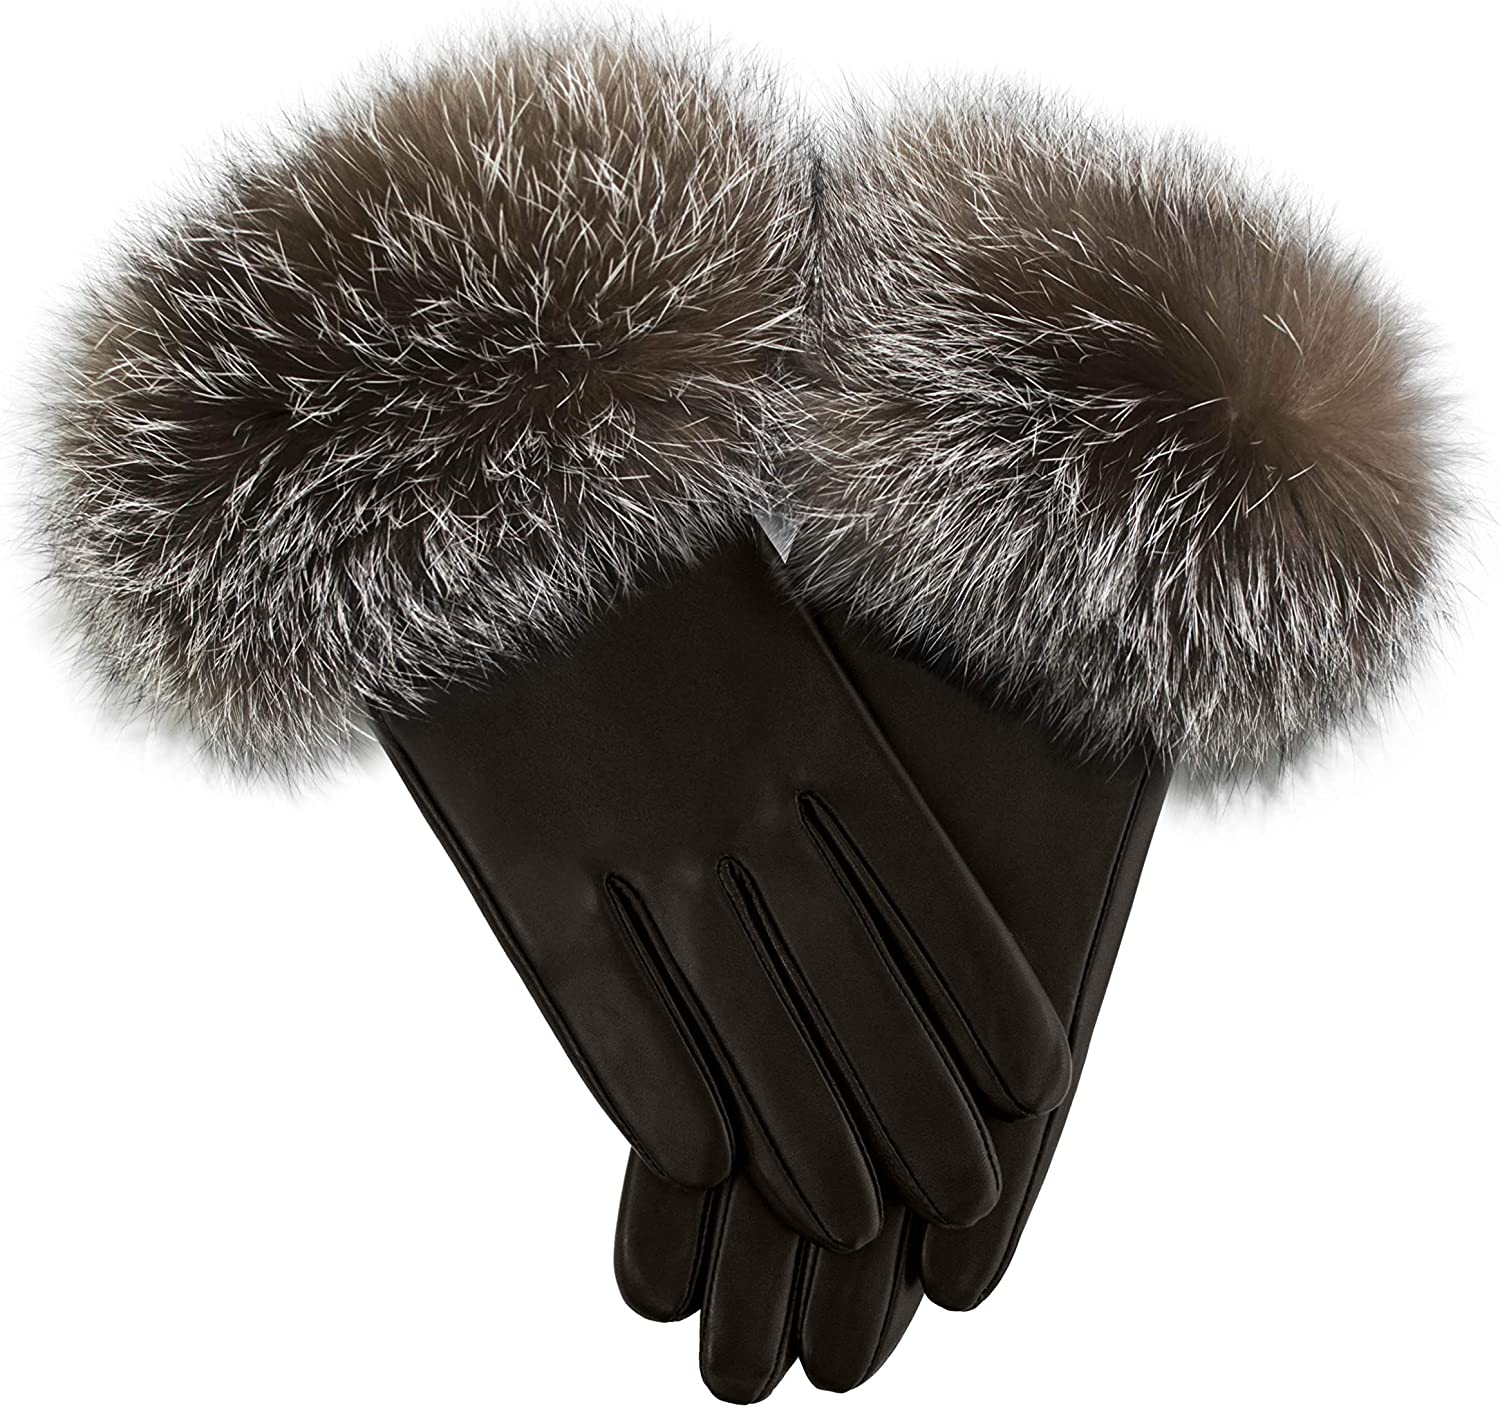 Brown Italian Lamb Leather Gloves with Crystal Fox Fur Trim